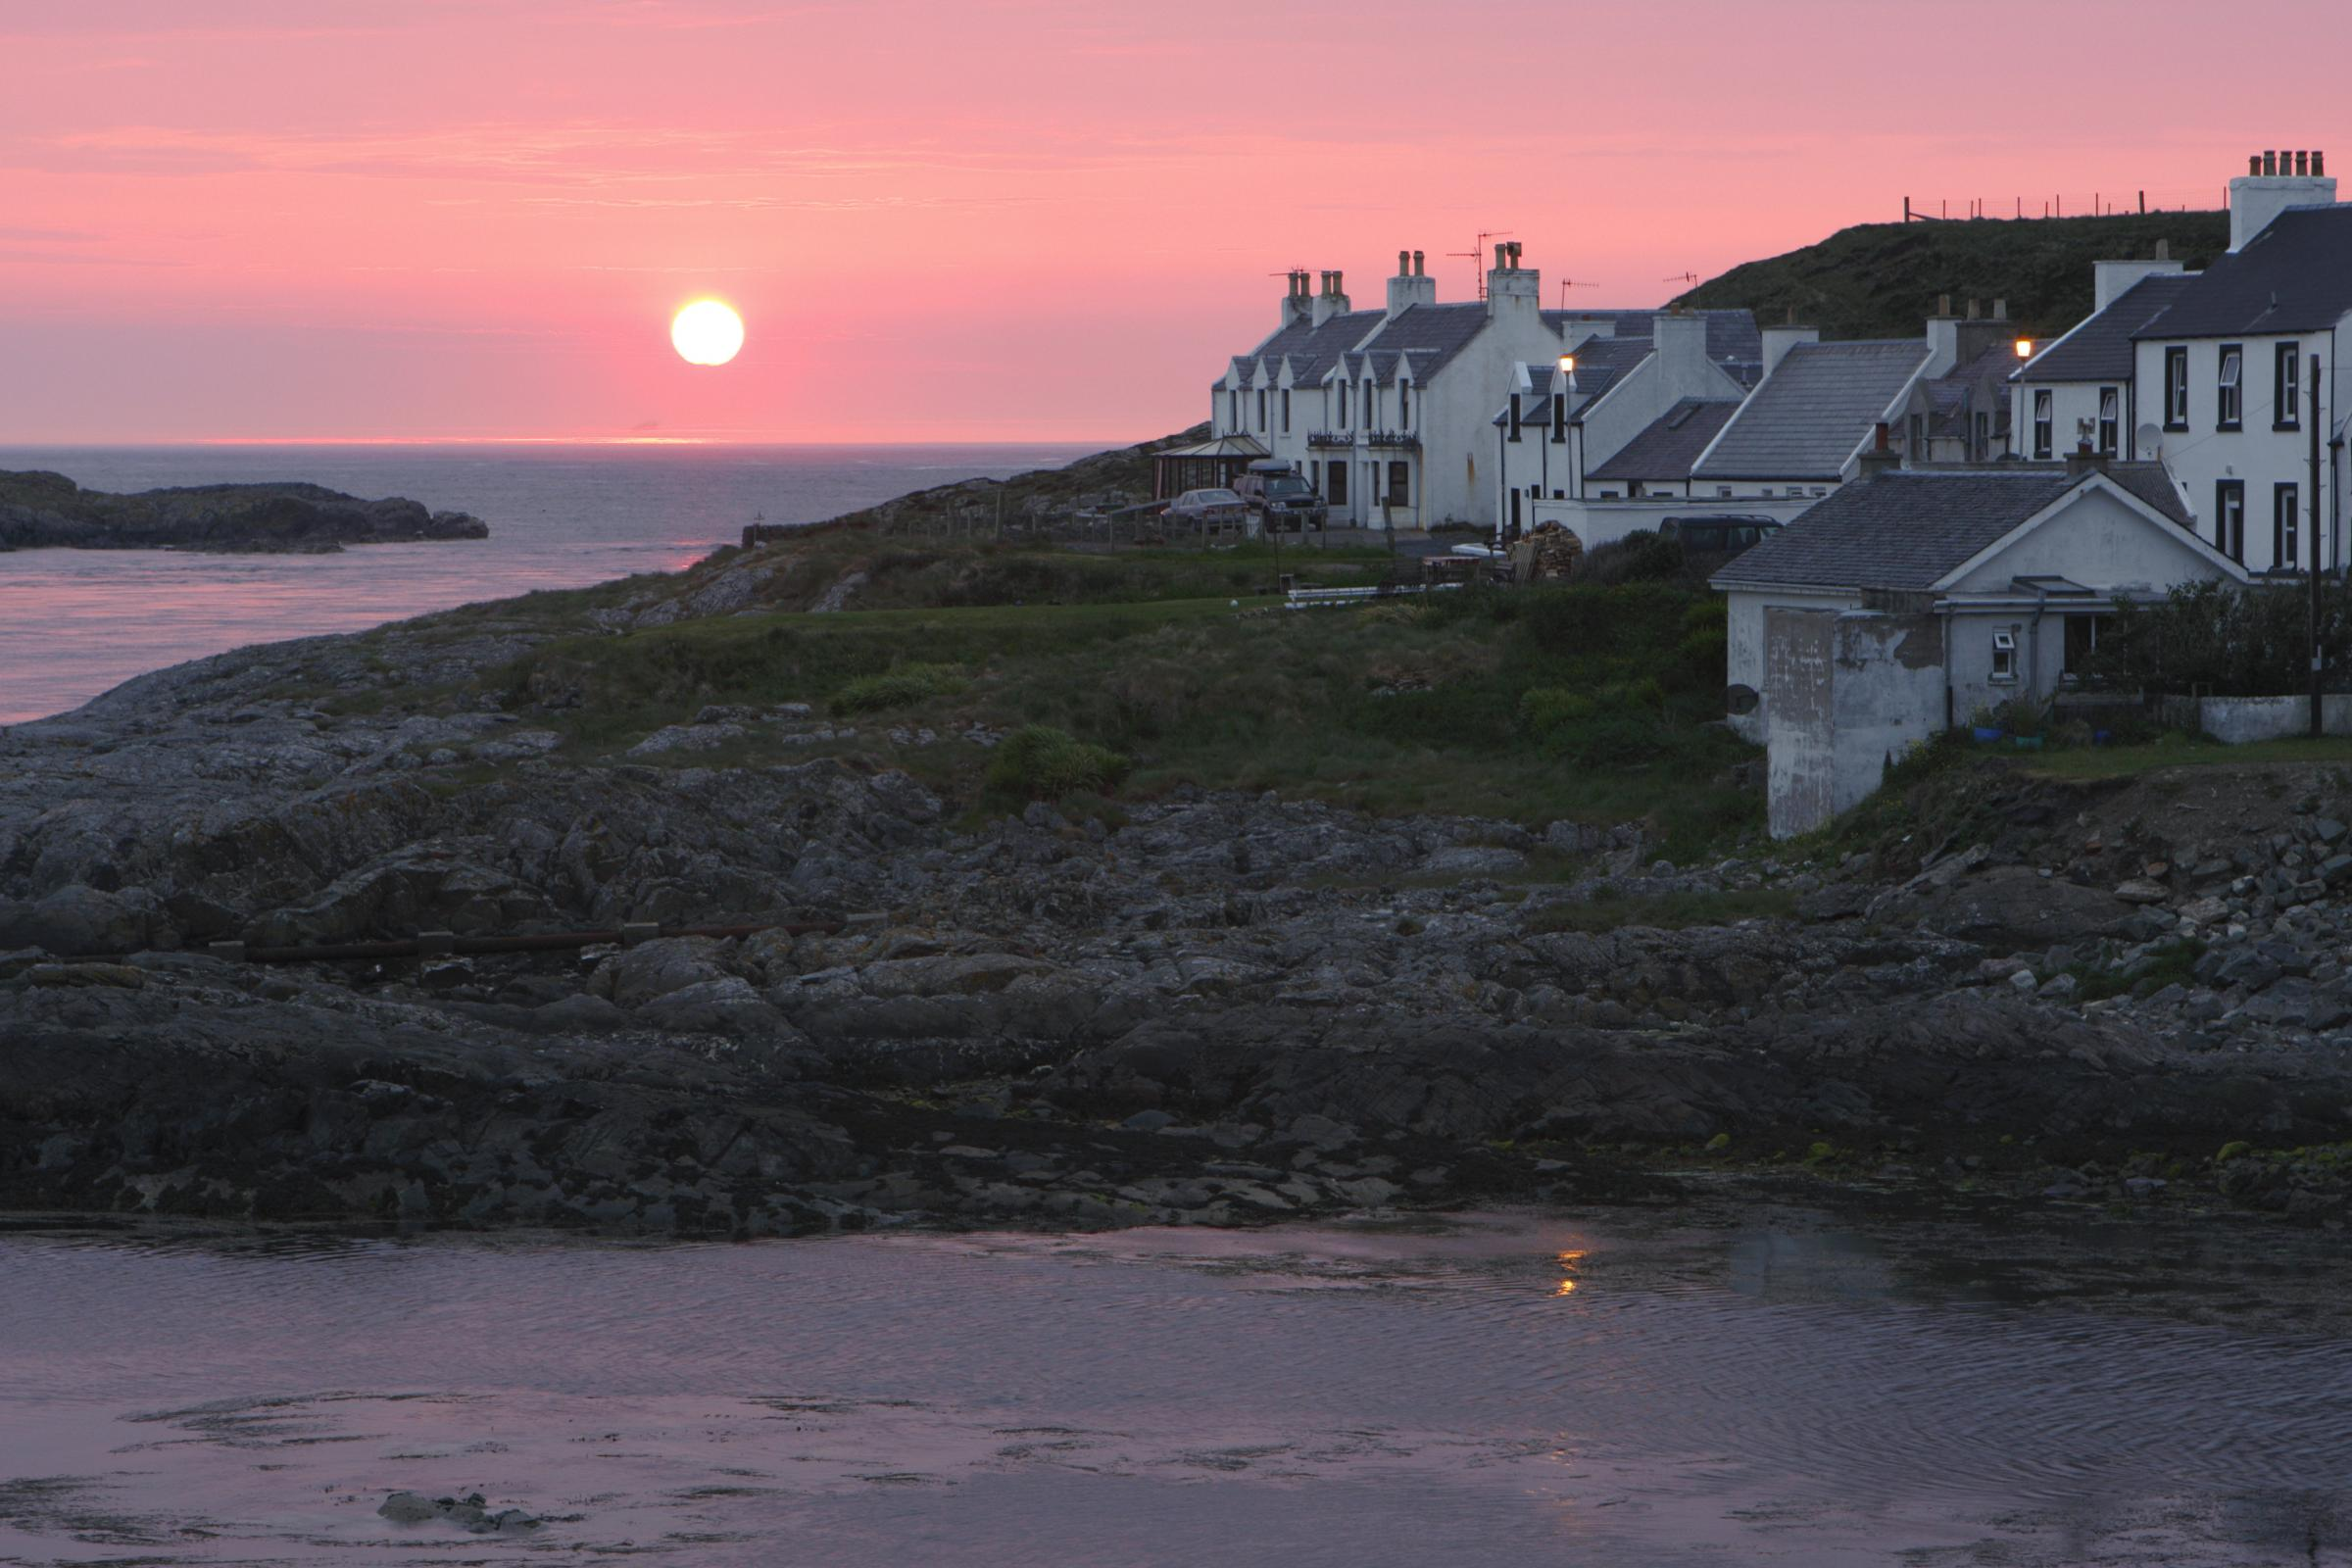 Island life could be transformed with first of its kind plans to boost economy